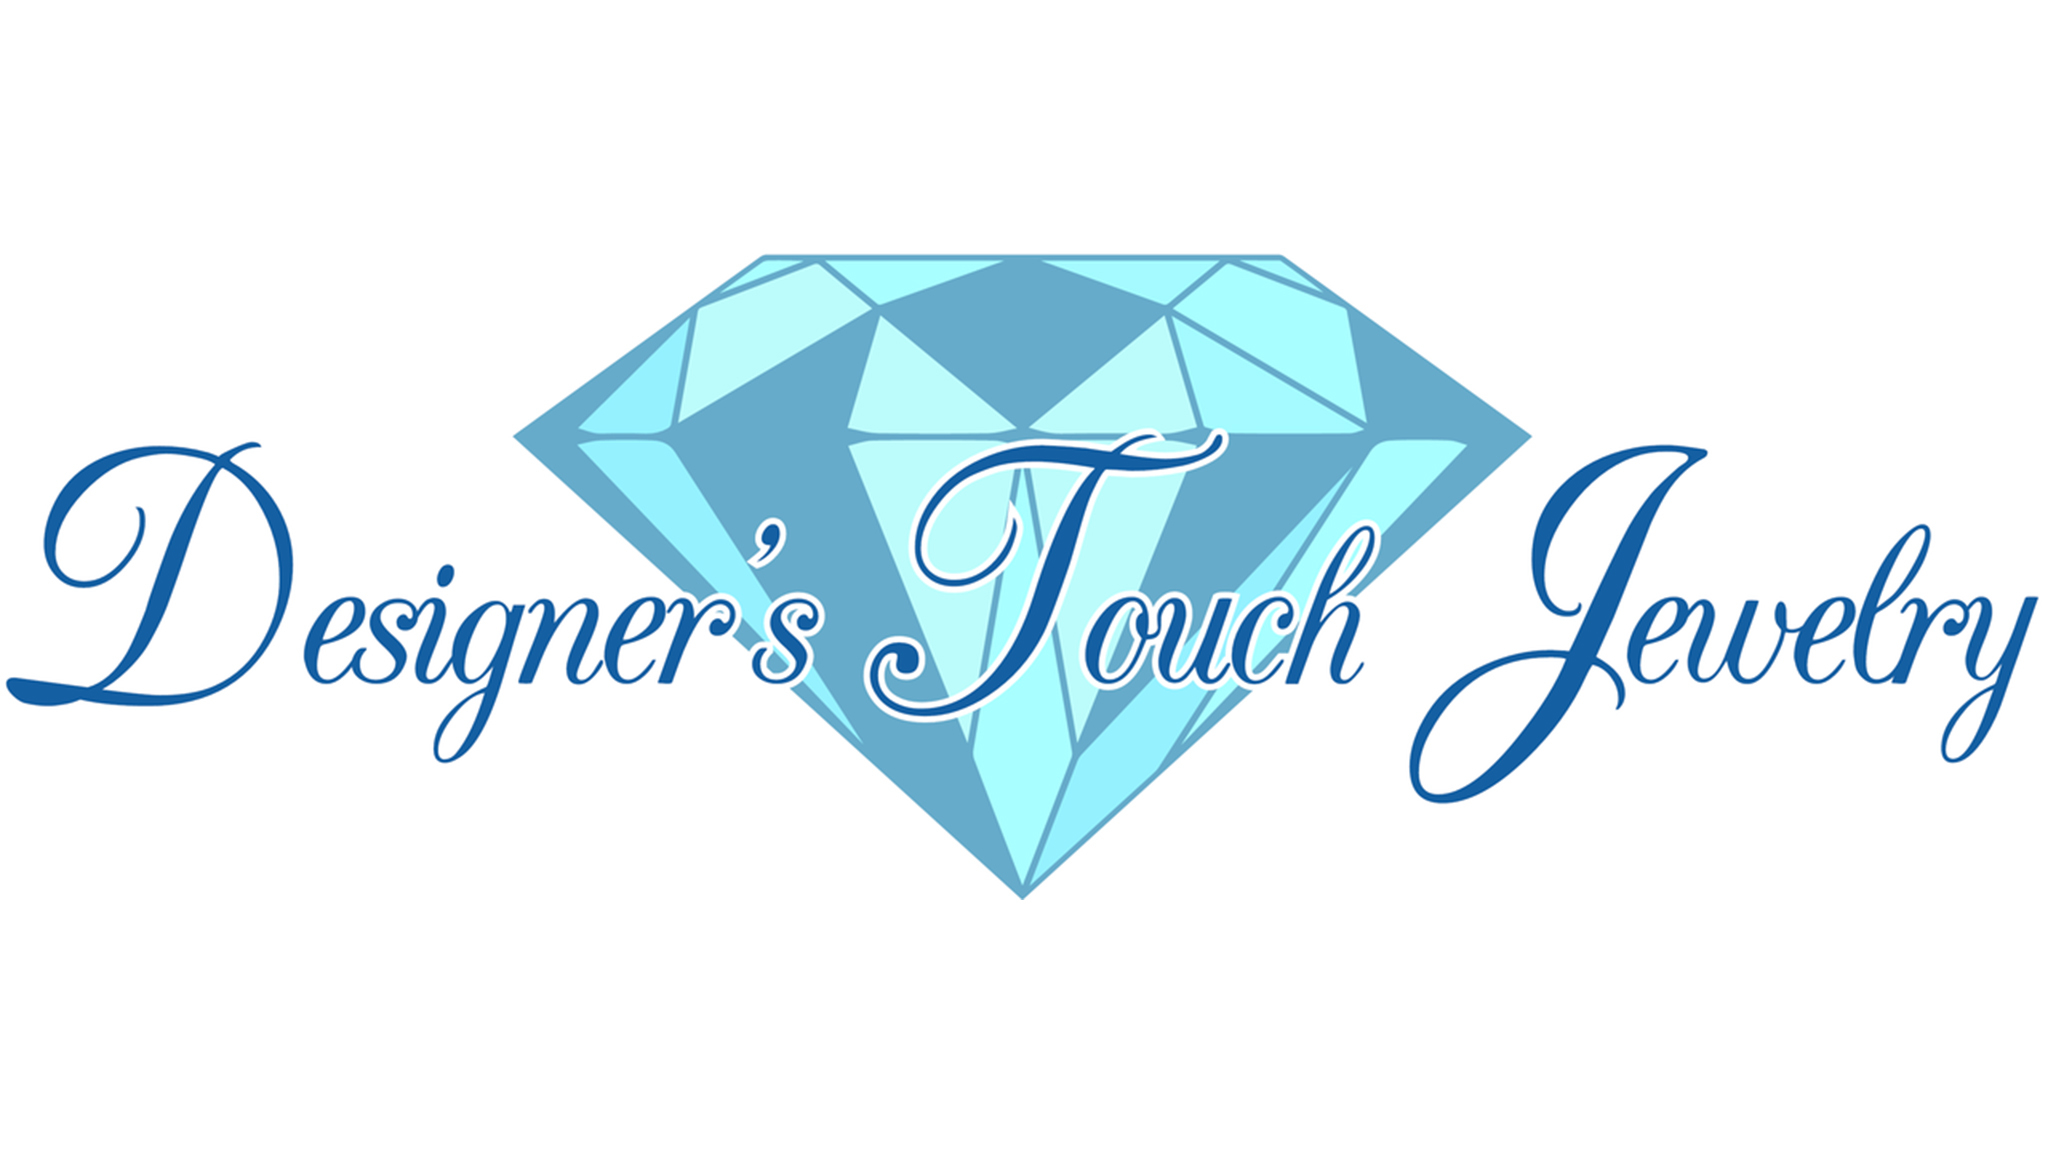 Designer's Touch Jewelry image 7